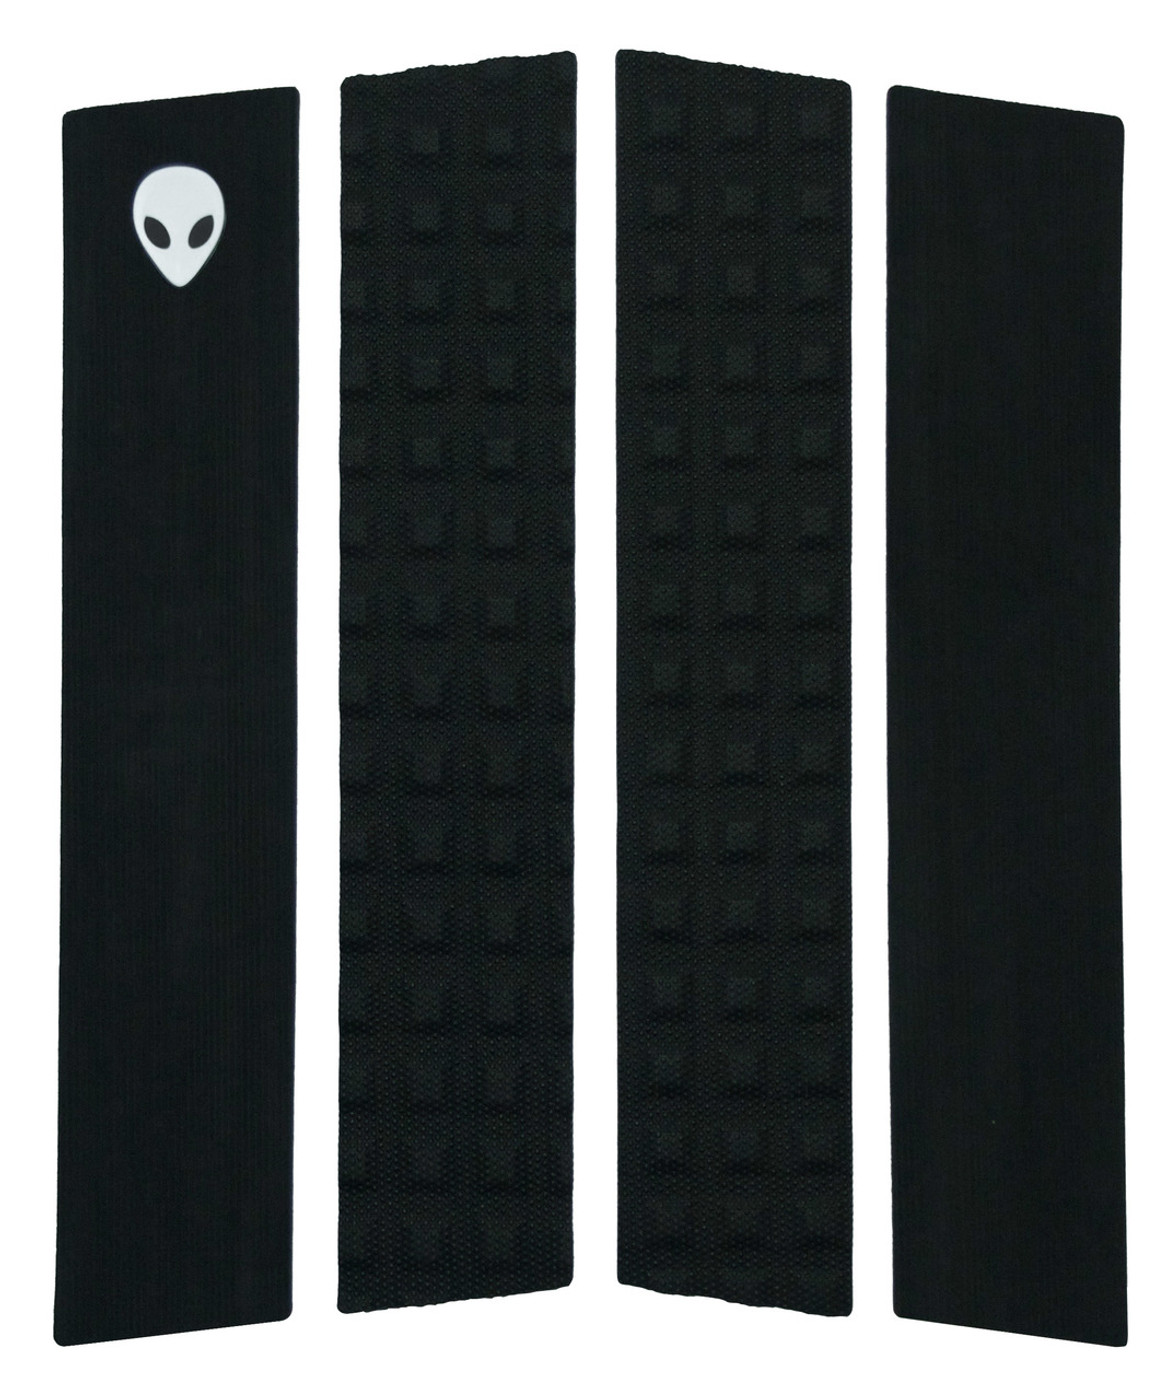 Lunasurf 4 piece front pad mixed groove